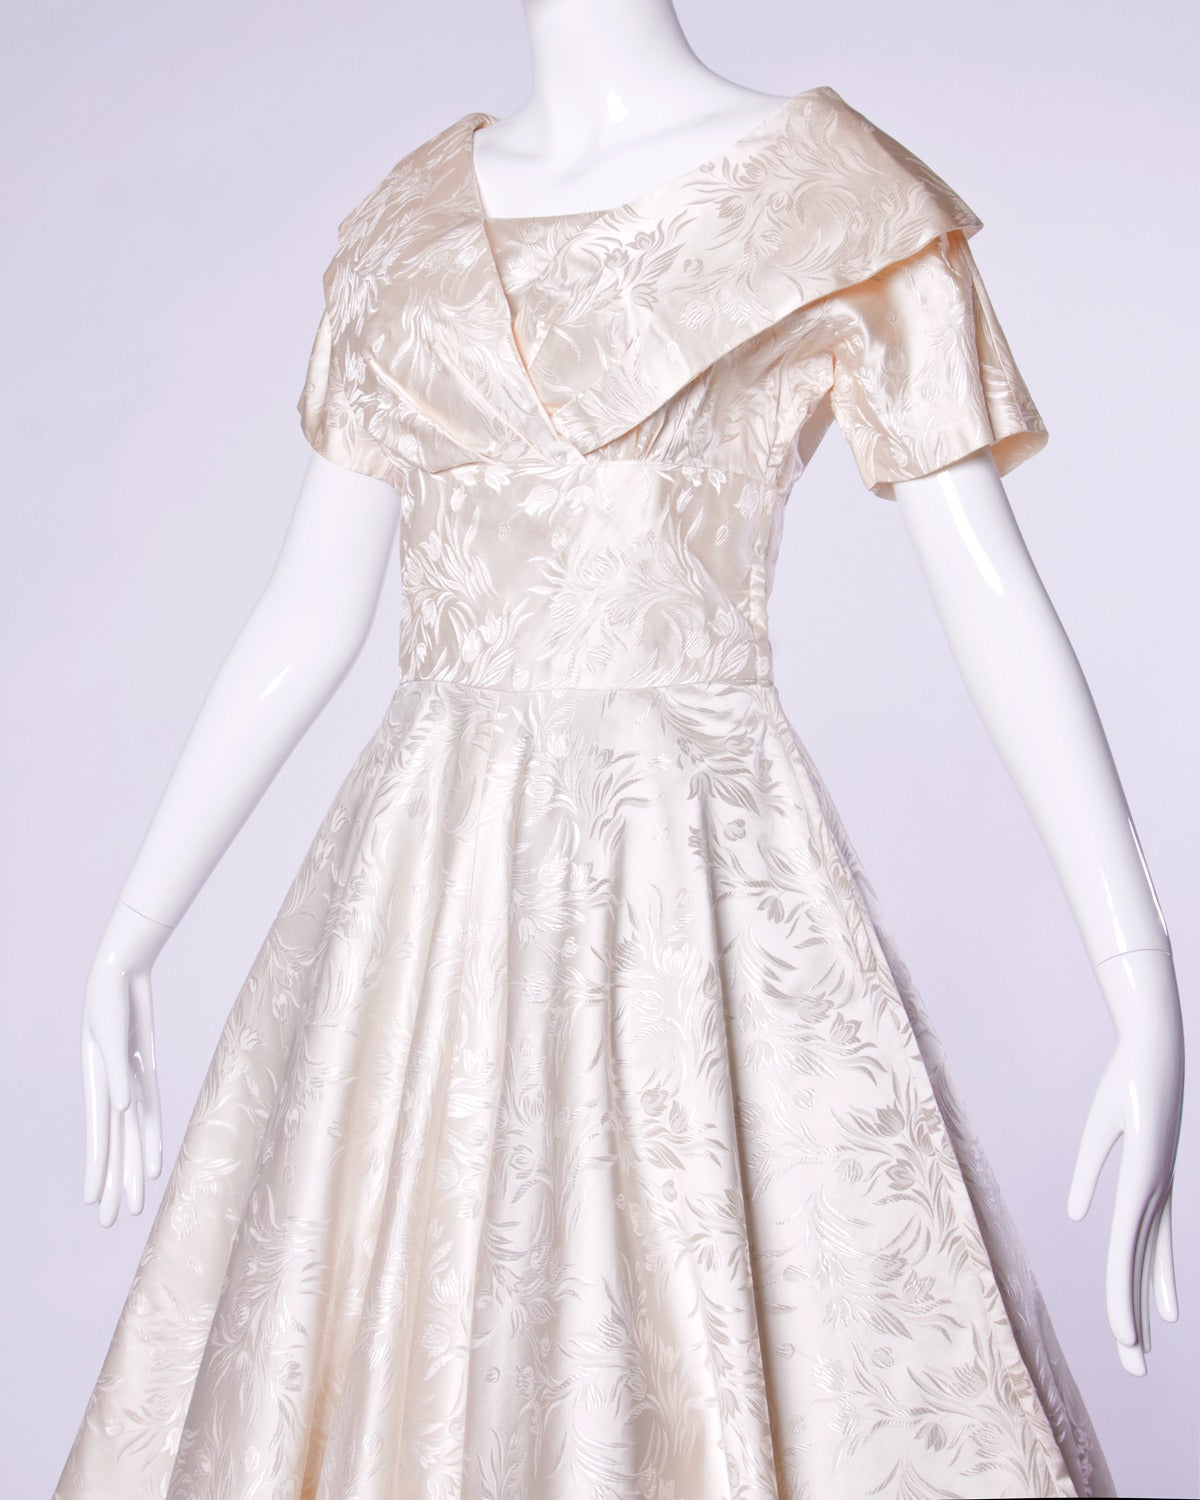 Gray Vintage 1950s 50s Silk Satin Ivory Full Sweep Wedding or Party Dress For Sale